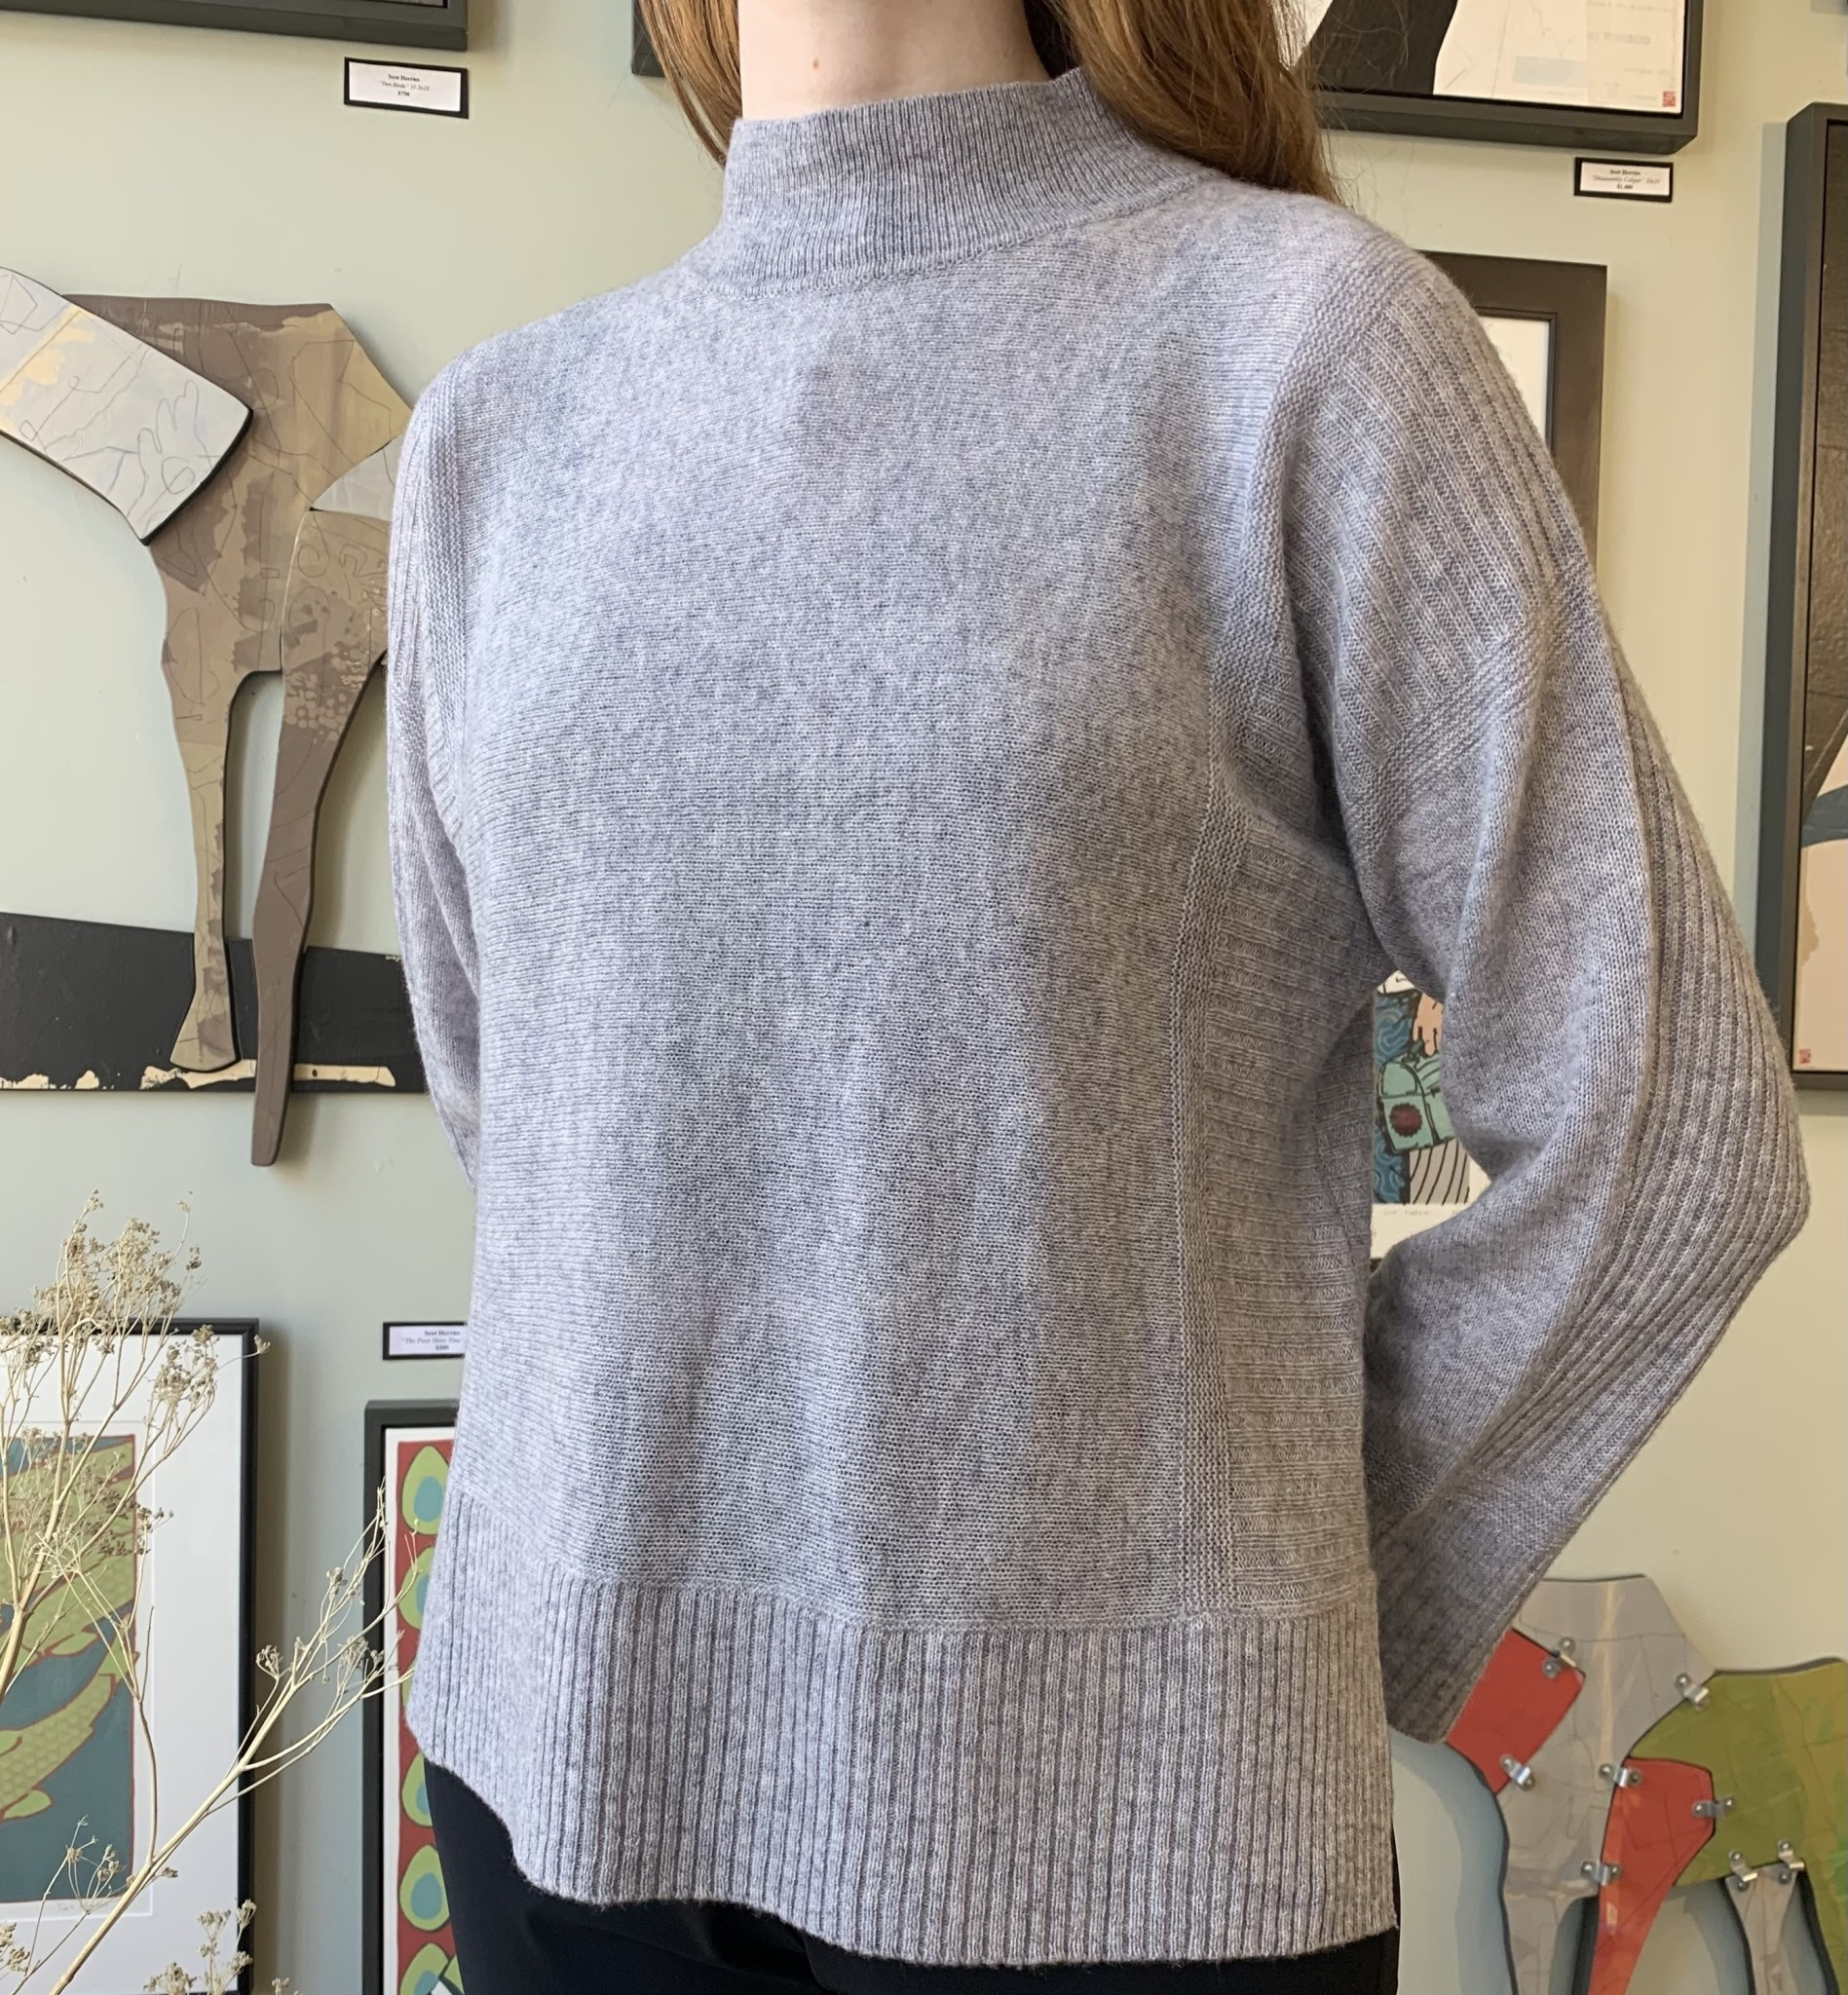 Alashan Cashmere Co Alashan- Sweater- 1008- 100% cash Kerry ribbed pullover